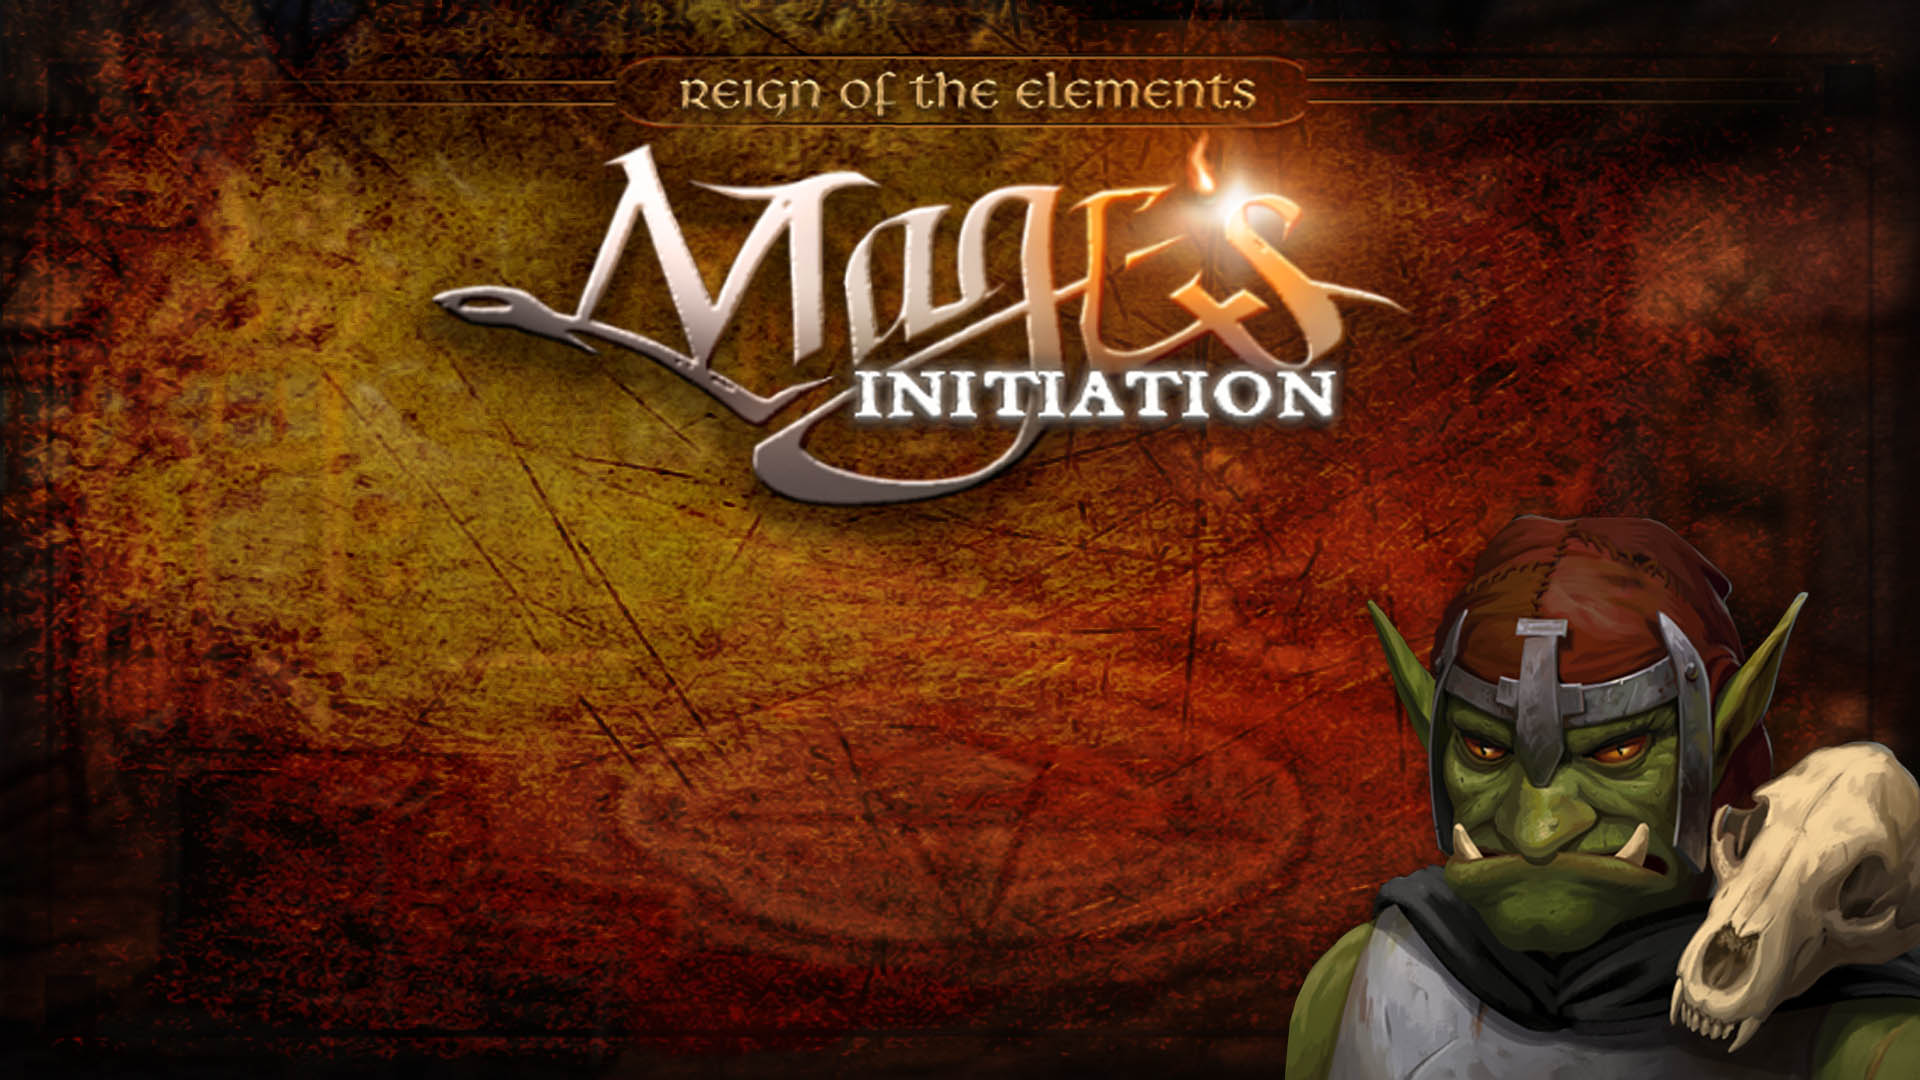 Showcase :: Mage's Initiation: Reign of the Elements